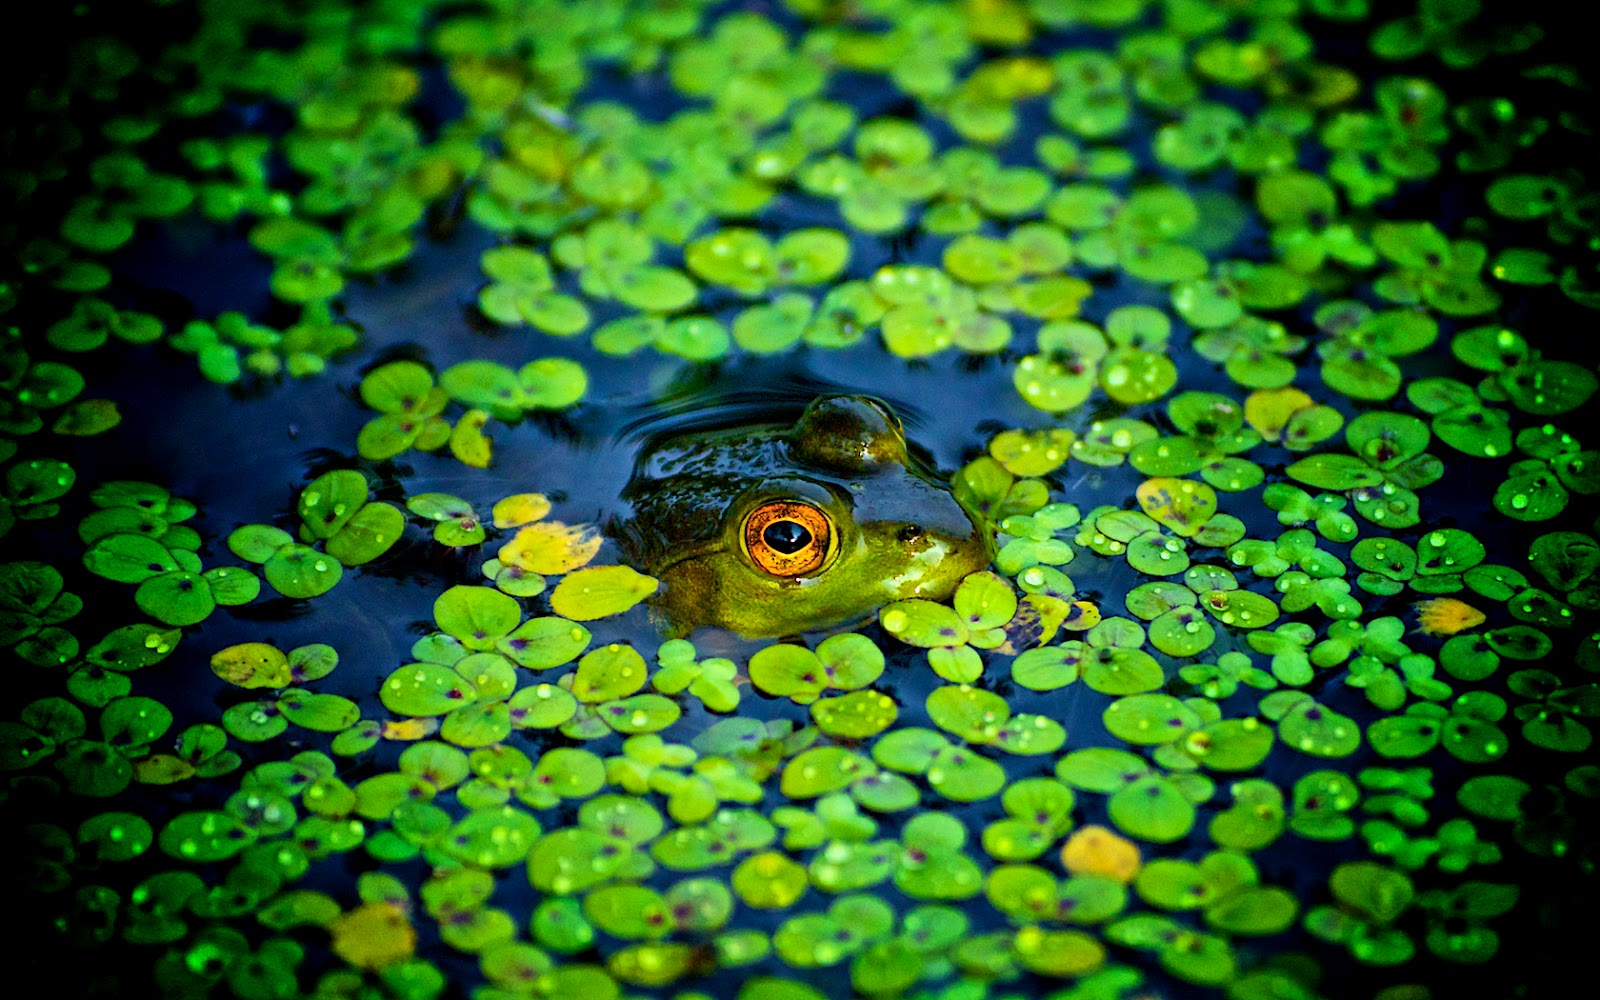 Frog Wallpapers Funny Animals HD Wallpapers Download Free Images Wallpaper [1000image.com]